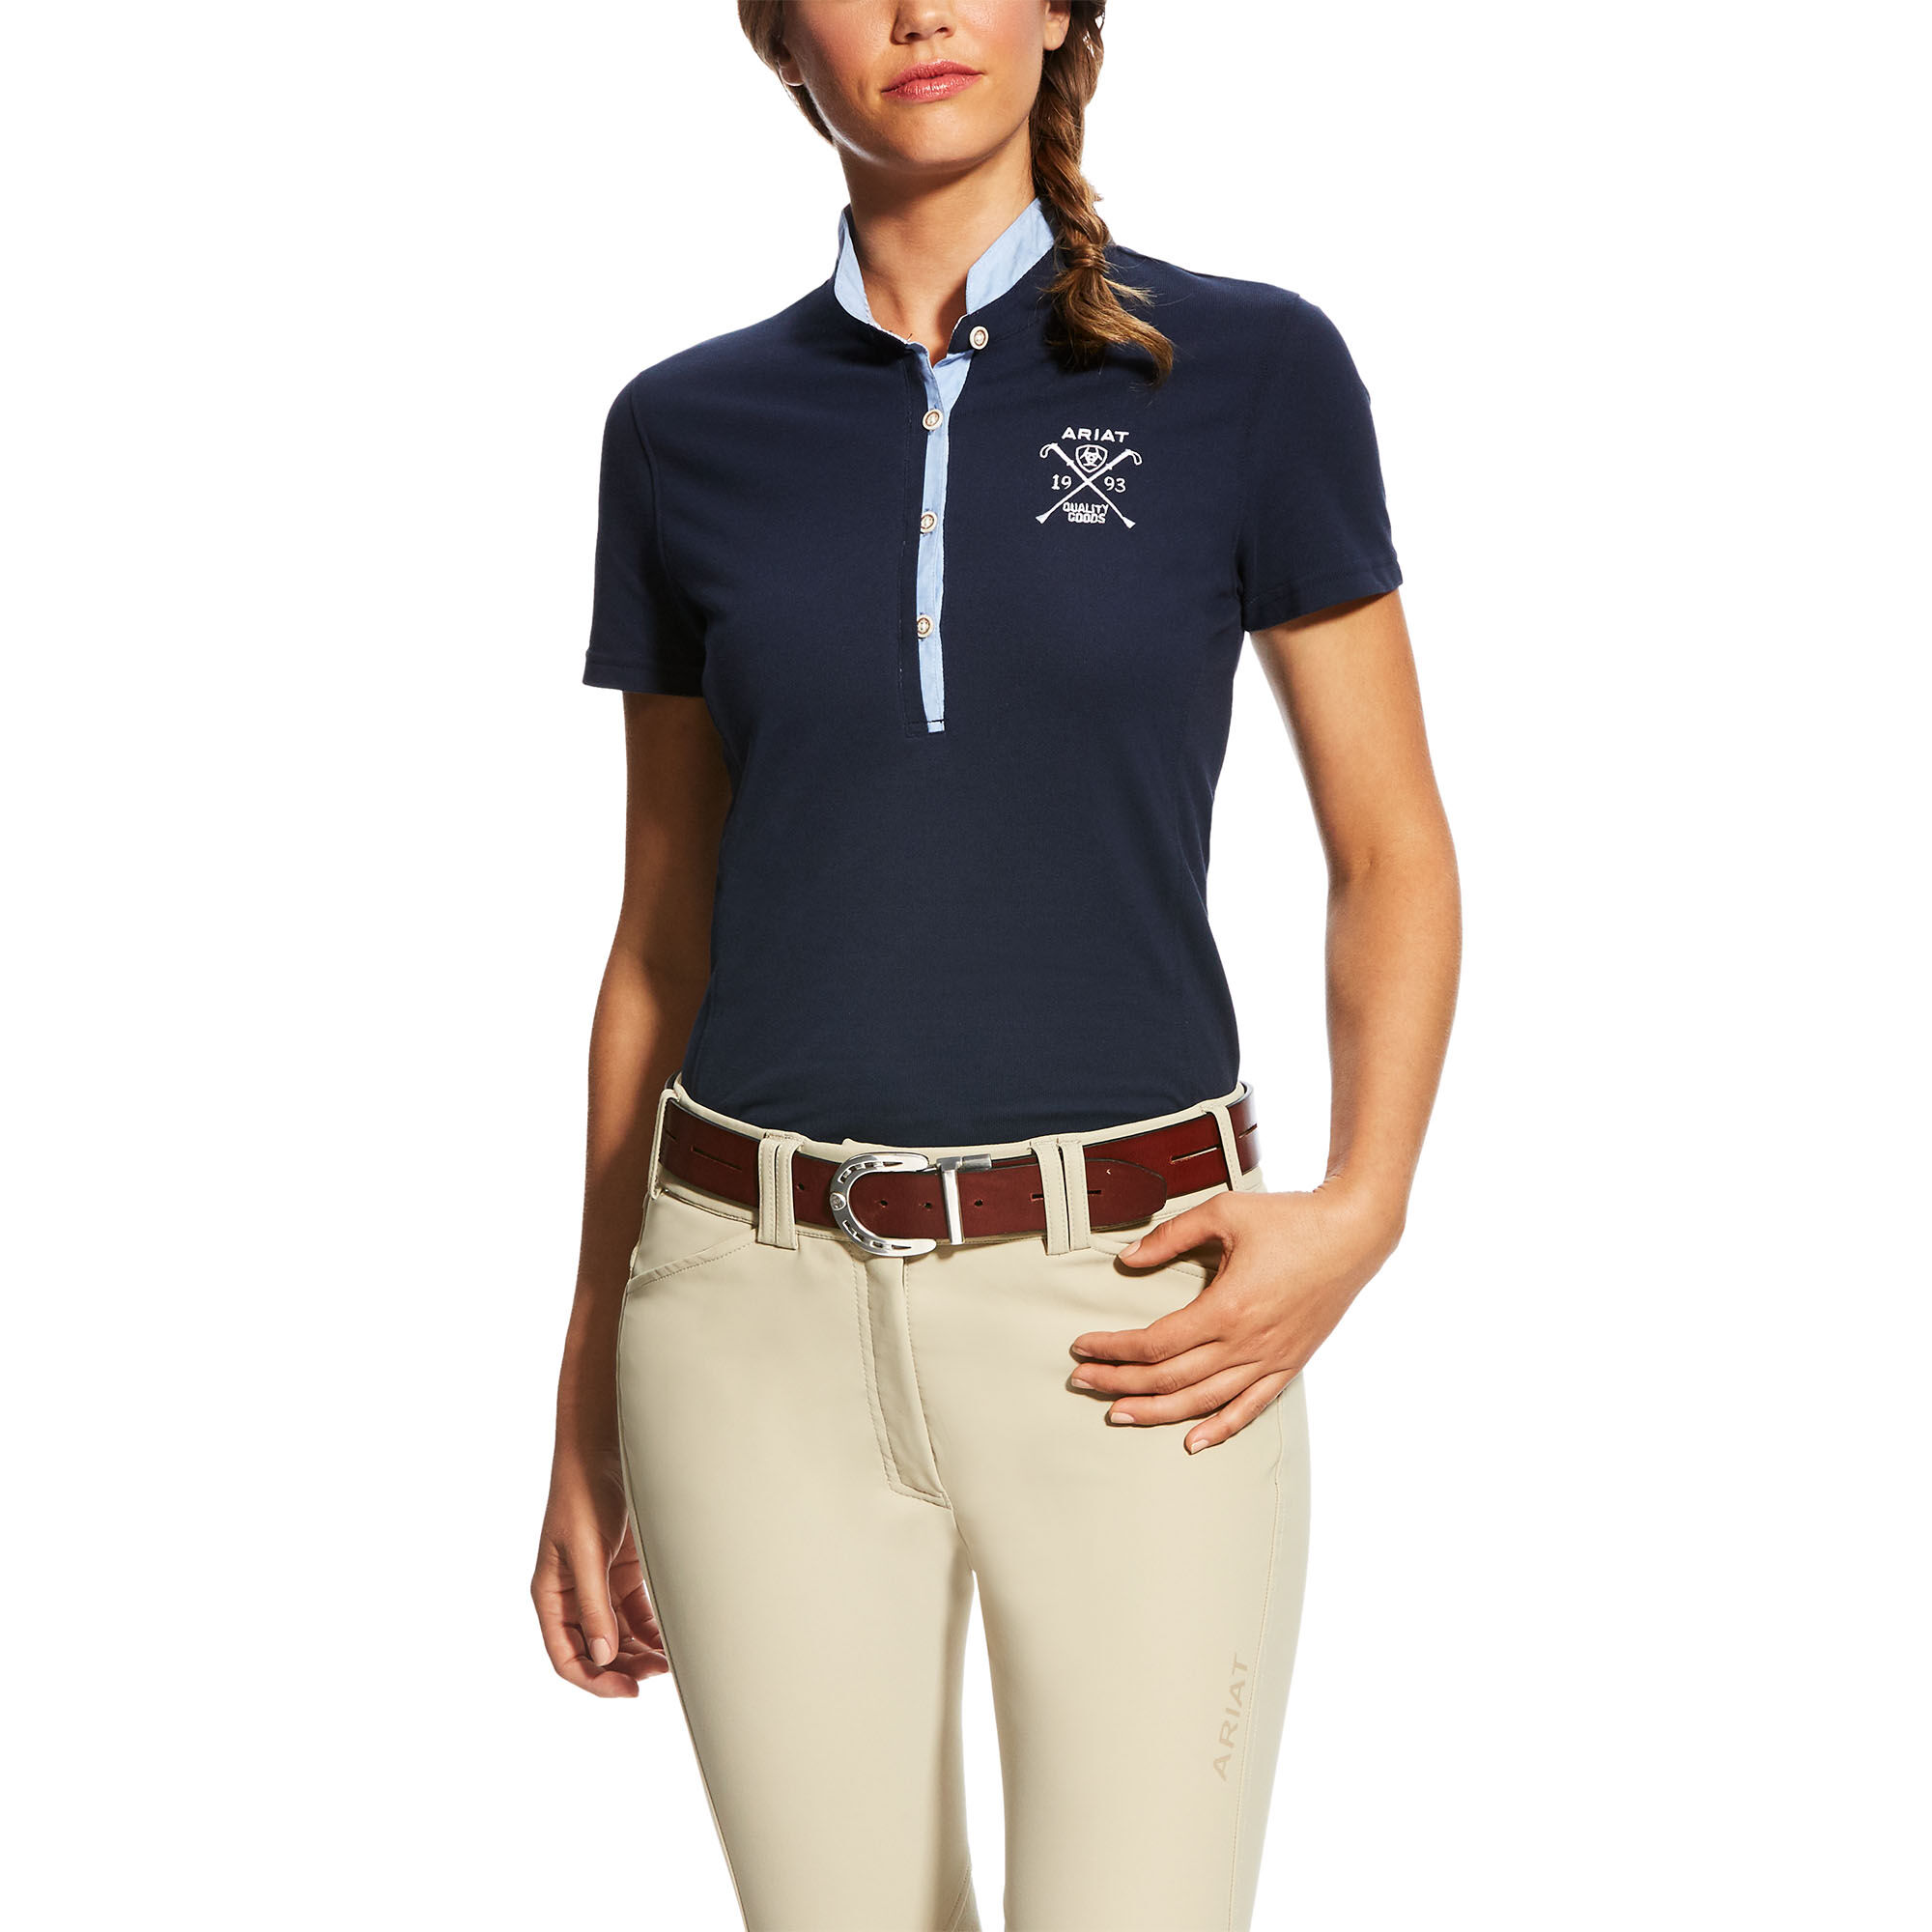 Ariat Polo Tops